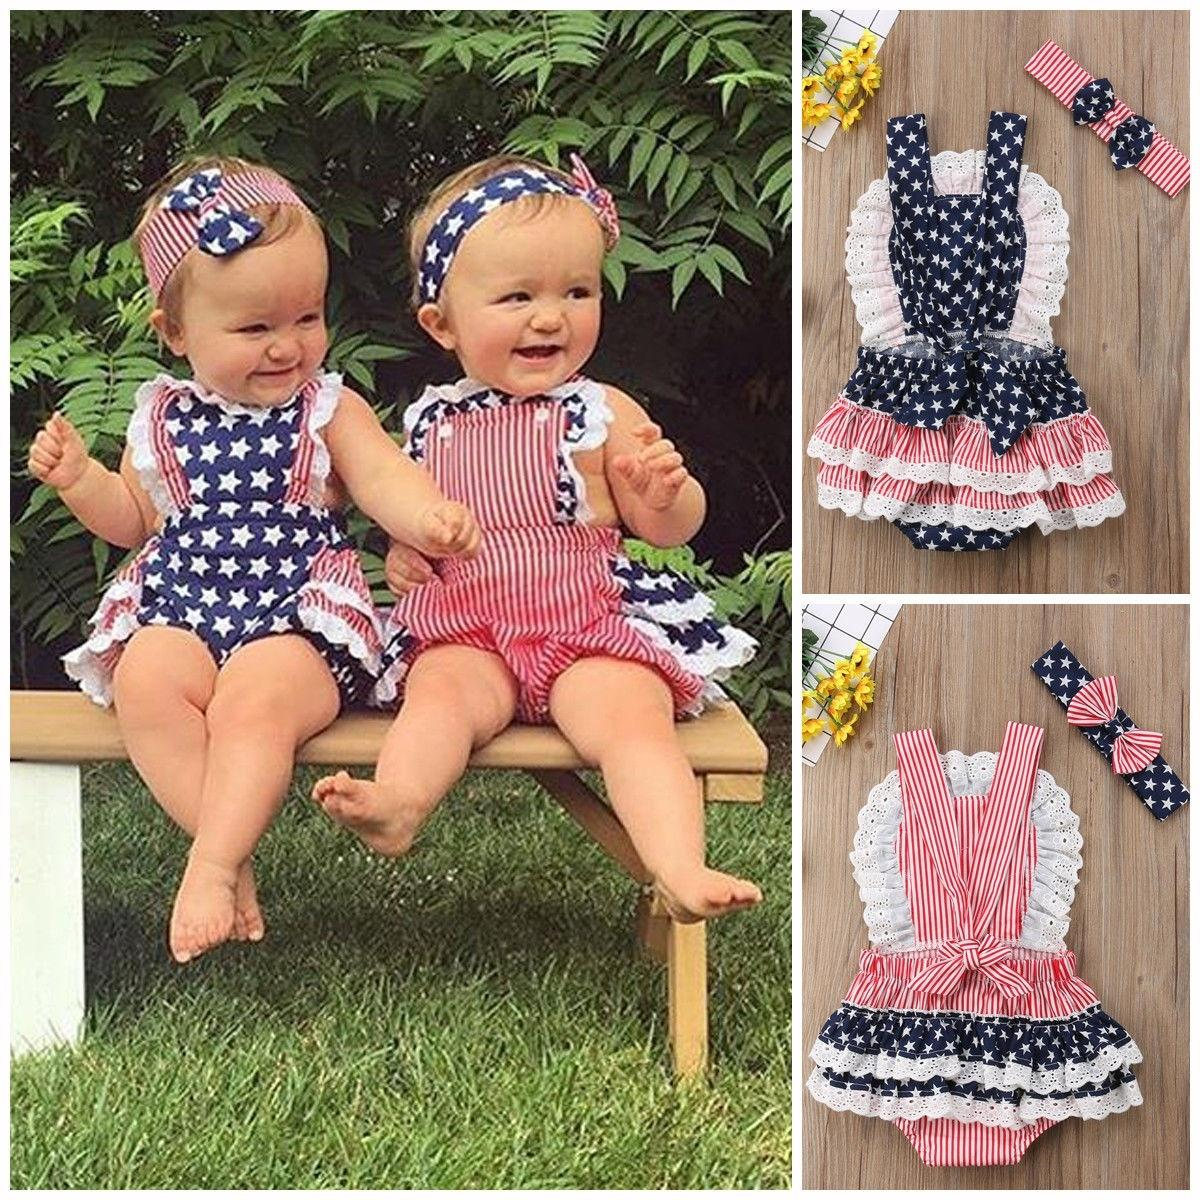 cc085ed87e99 Product details of Newborn Baby Girls Striped Star Backless Ruffle Lace  Romper Jumpsuit Bodysuit Sunsuit Headband Outfits Set